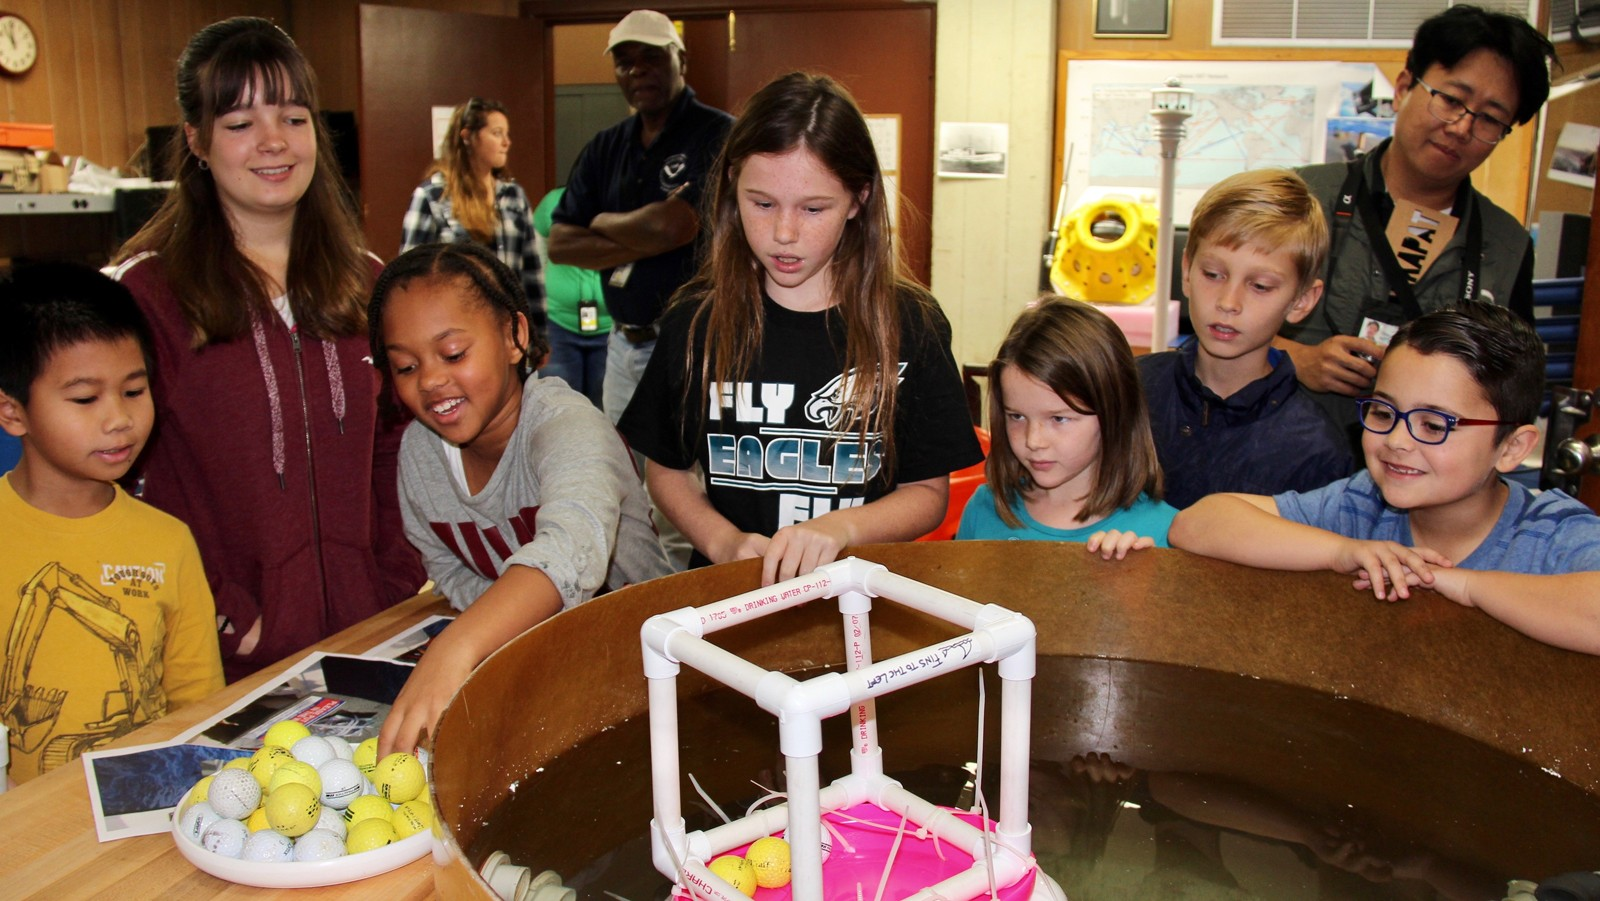 Following a buoyancy lesson, the kids were tasked with building their own buoy. The winning buoy held more than 33 golf balls! Image credit: NOAA